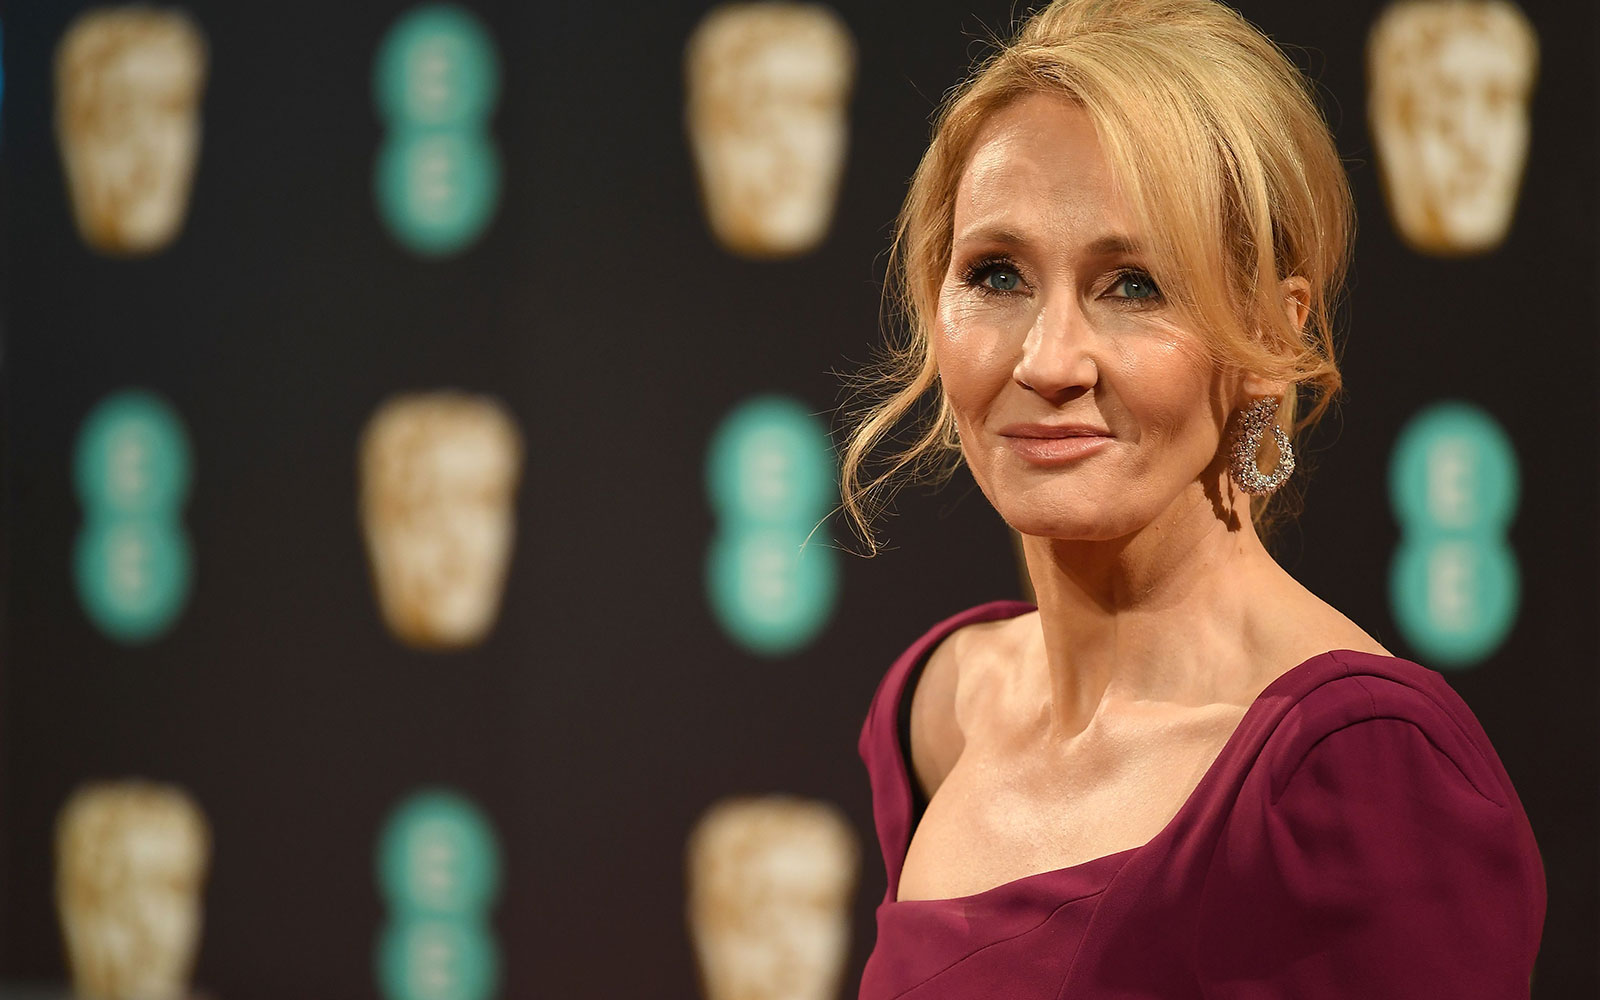 J.K. Rowling Officially Has Her Own Pub in Scotland